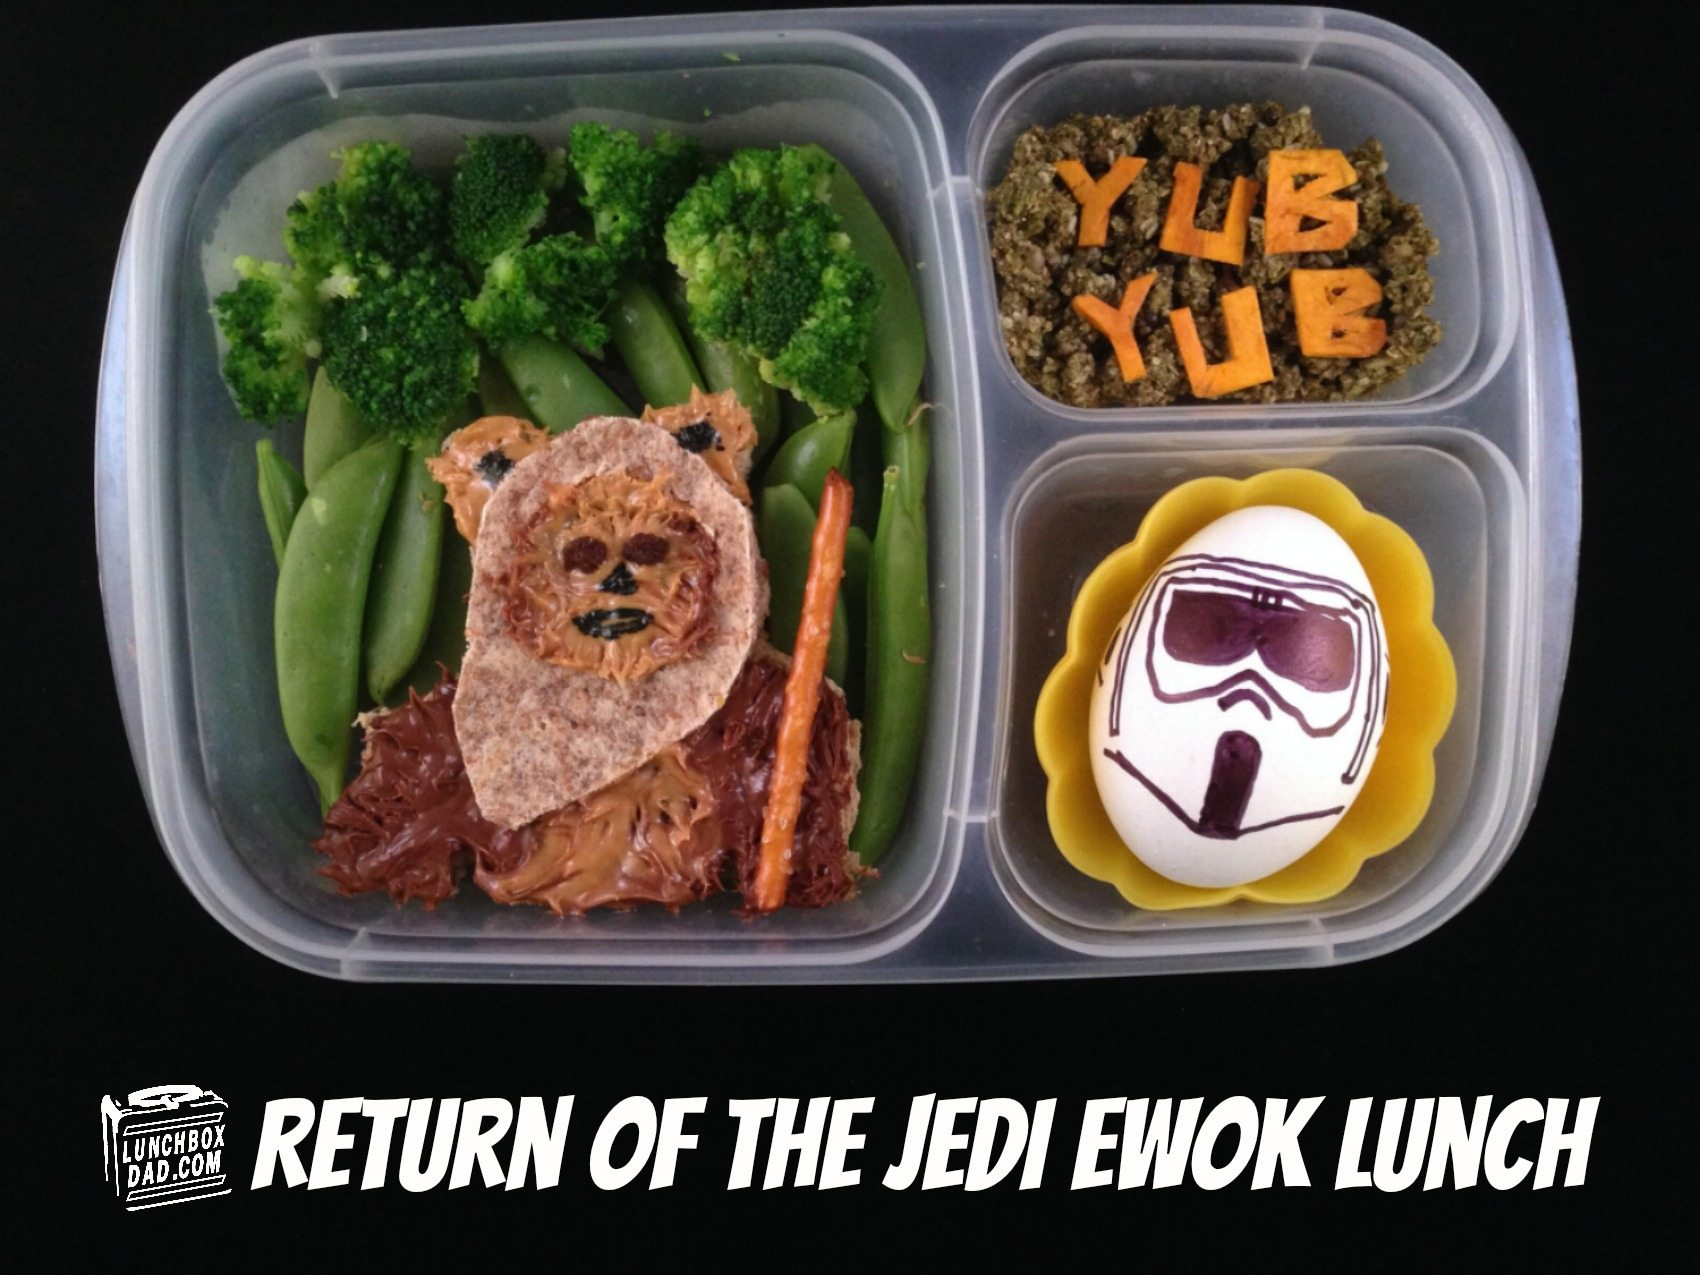 Guest Post: Lunchbox Dad Shows How to Create an Ewok Lunch for Your Kids